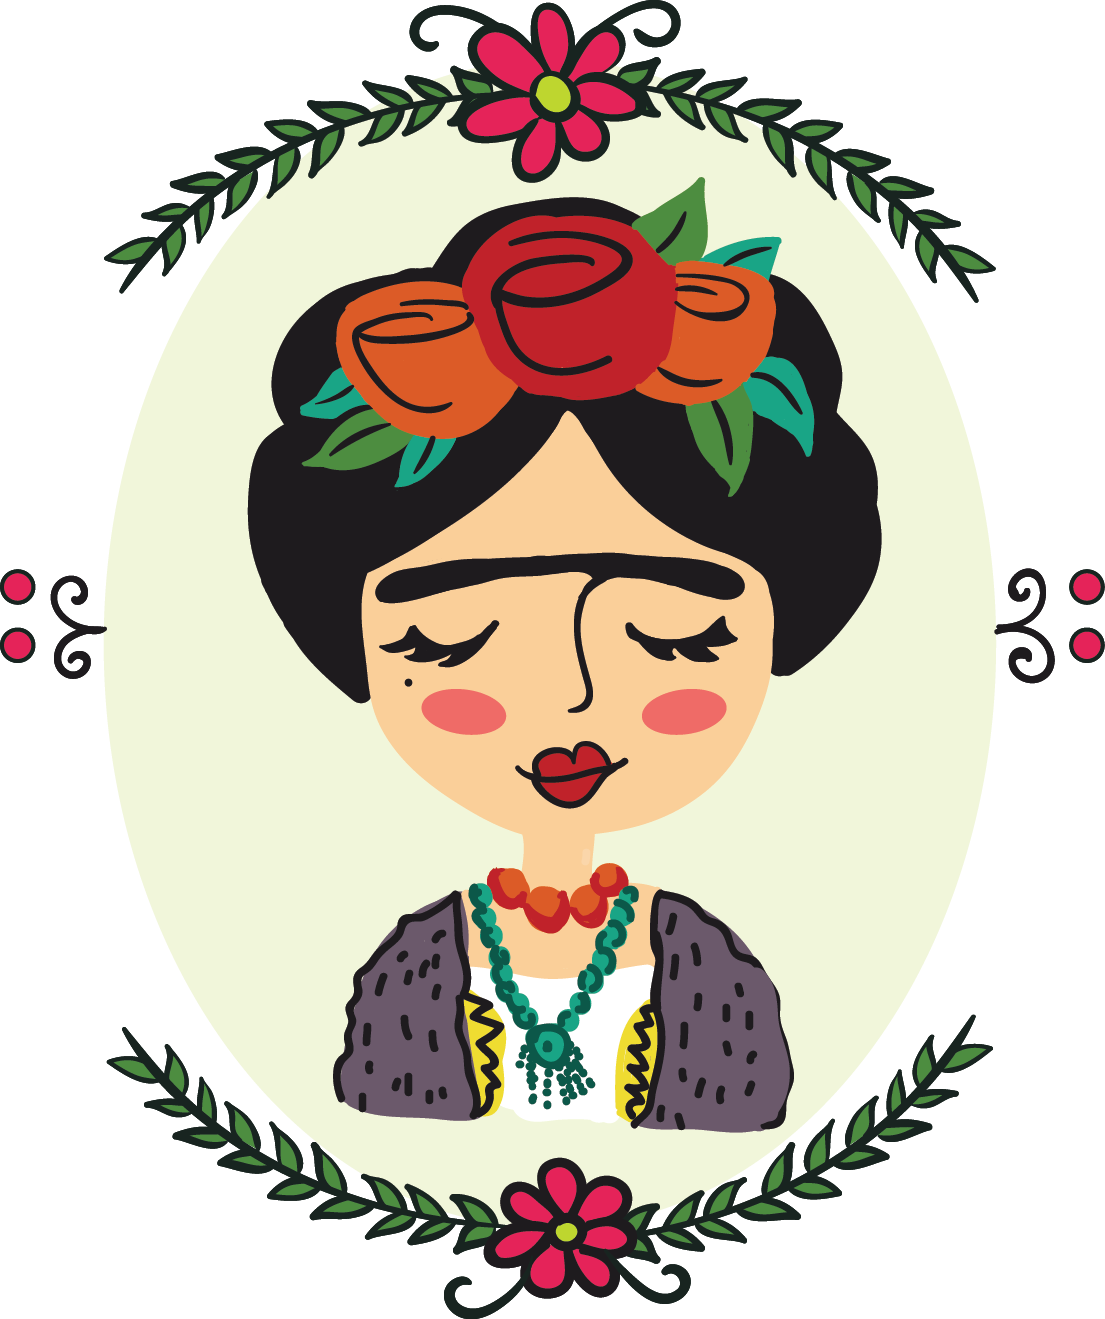 Frida kahlo vector clipart picture free download Frida Kahlo illustration on Behance | aesthetic in 2019 | Frida ... picture free download